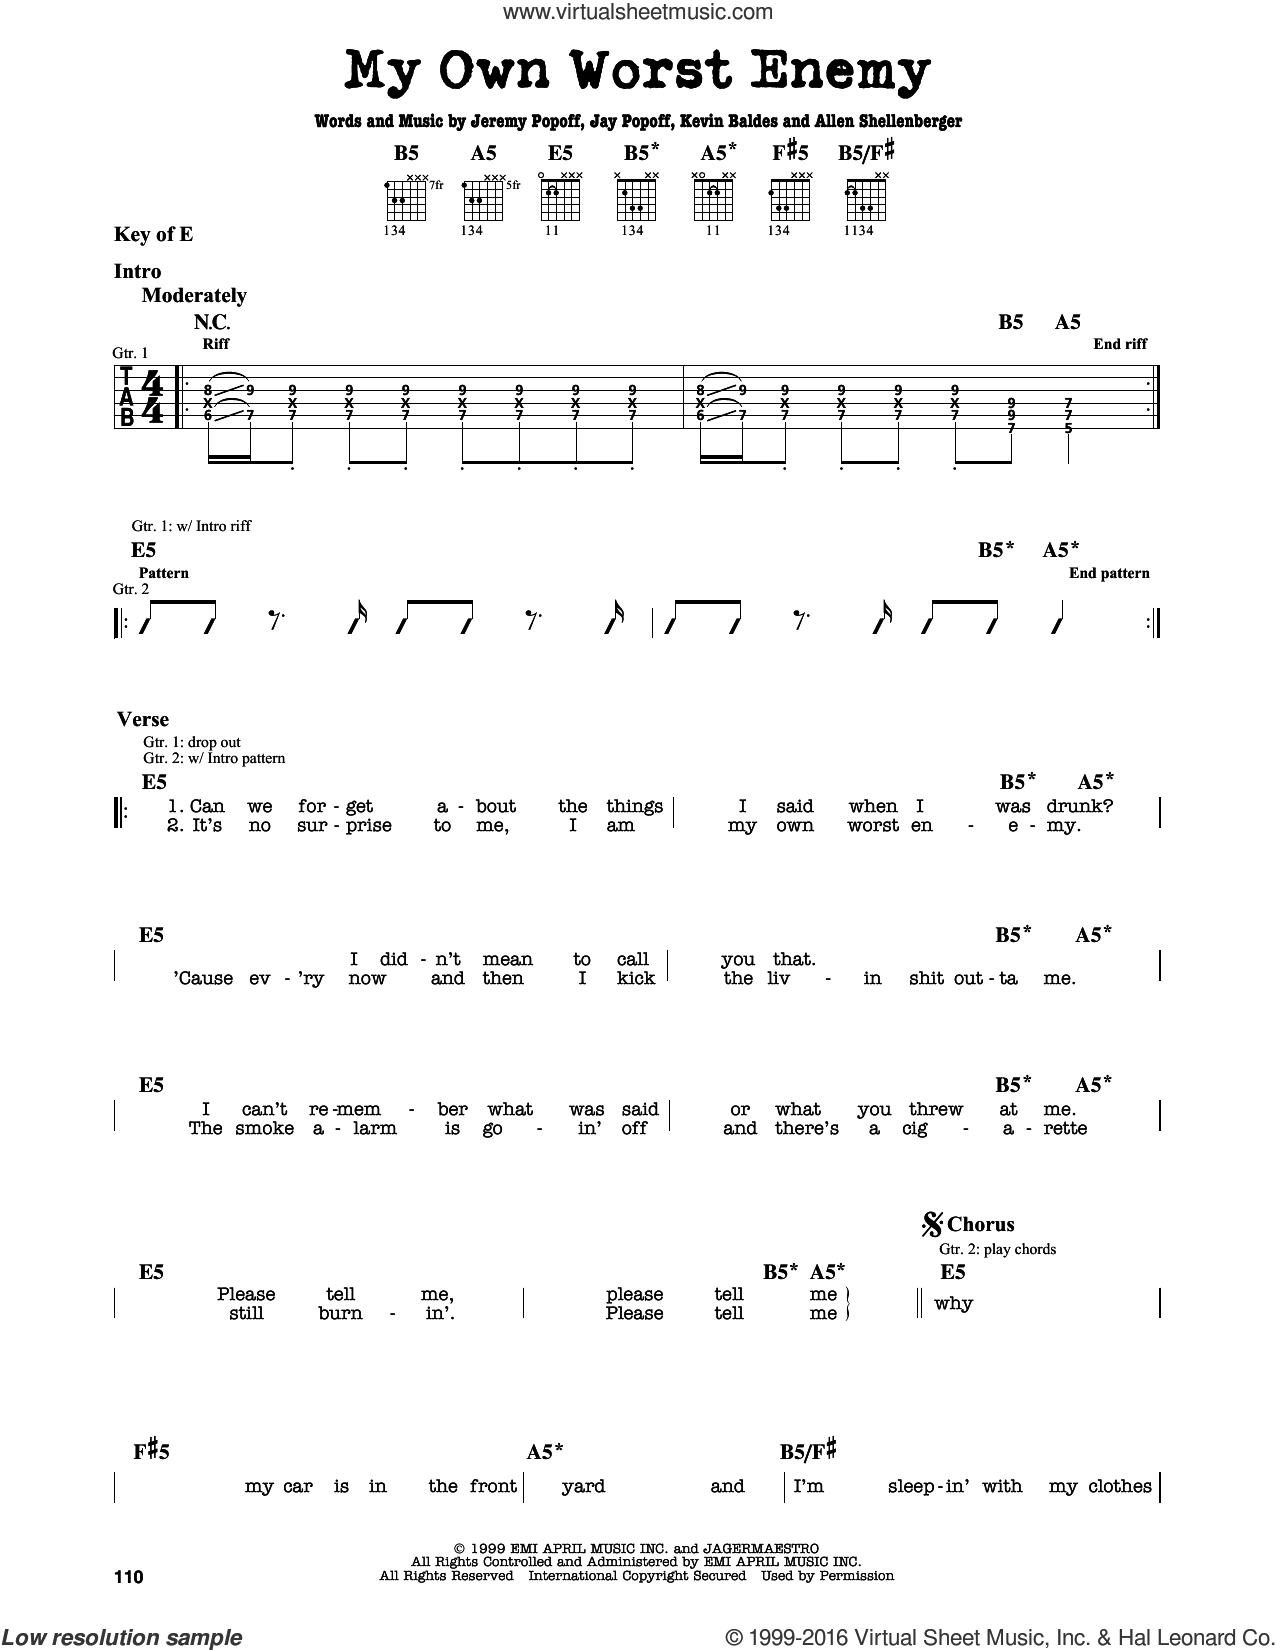 My Own Worst Enemy sheet music for guitar solo (lead sheet) by Lit, Allen Shellenberger, Jay Popoff, Jeremy Popoff and Kevin Baldes, intermediate guitar (lead sheet)